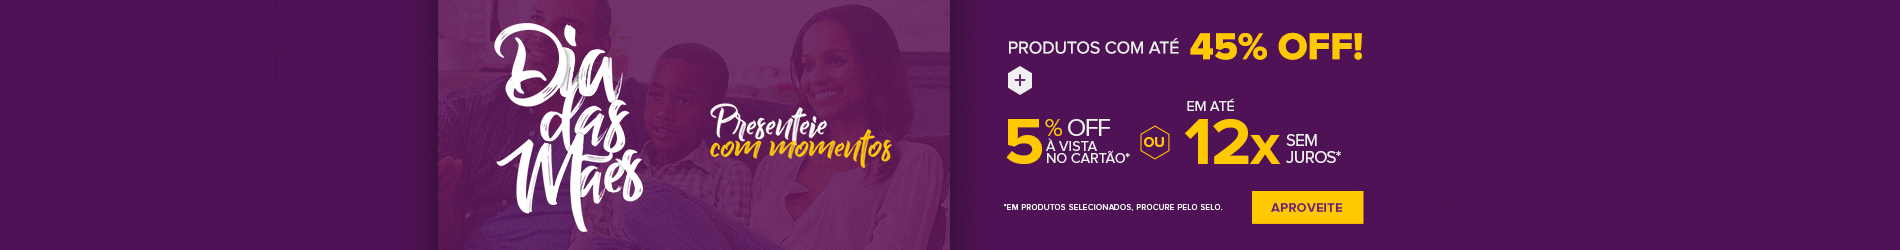 Promoção Interna - 2427 - camp-diadasmaes_45off-5offvistaou12x_23042018_home1 - 45off-5offvistaou12x - 1